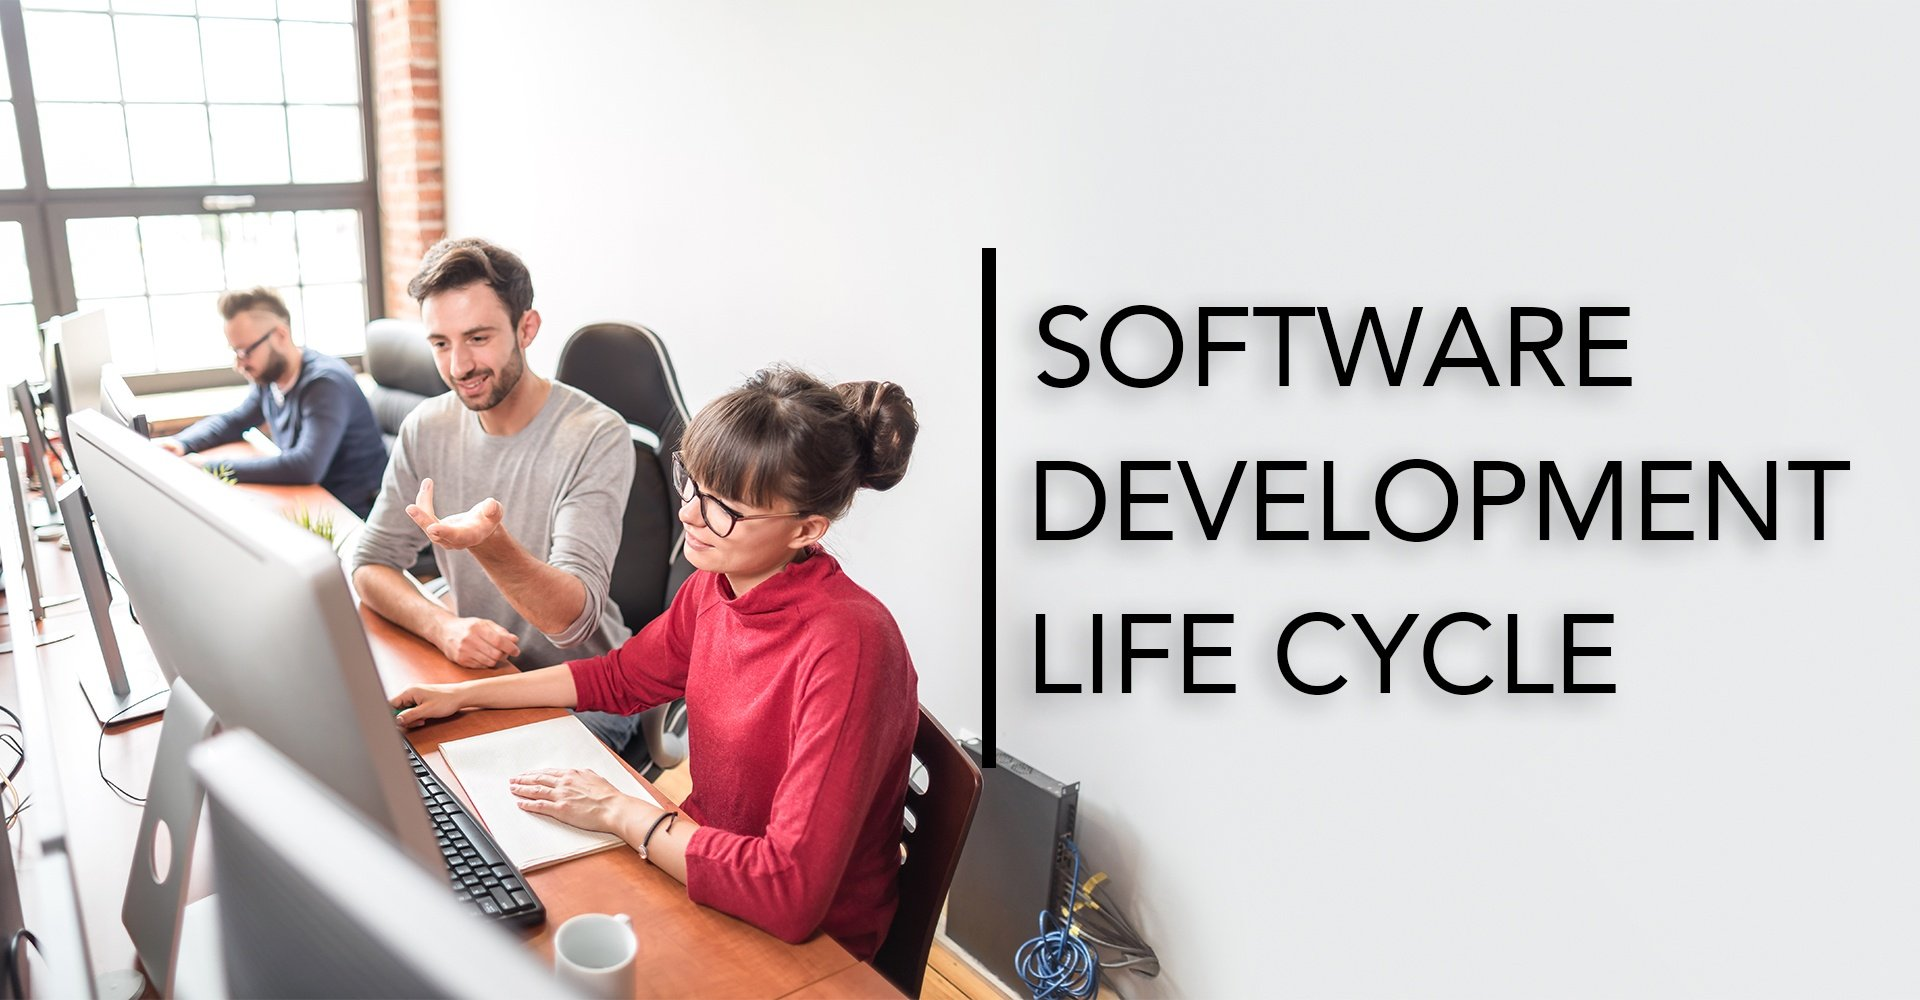 620 - An in Depth Look at the Agile Software Development Life Cycle - Featured